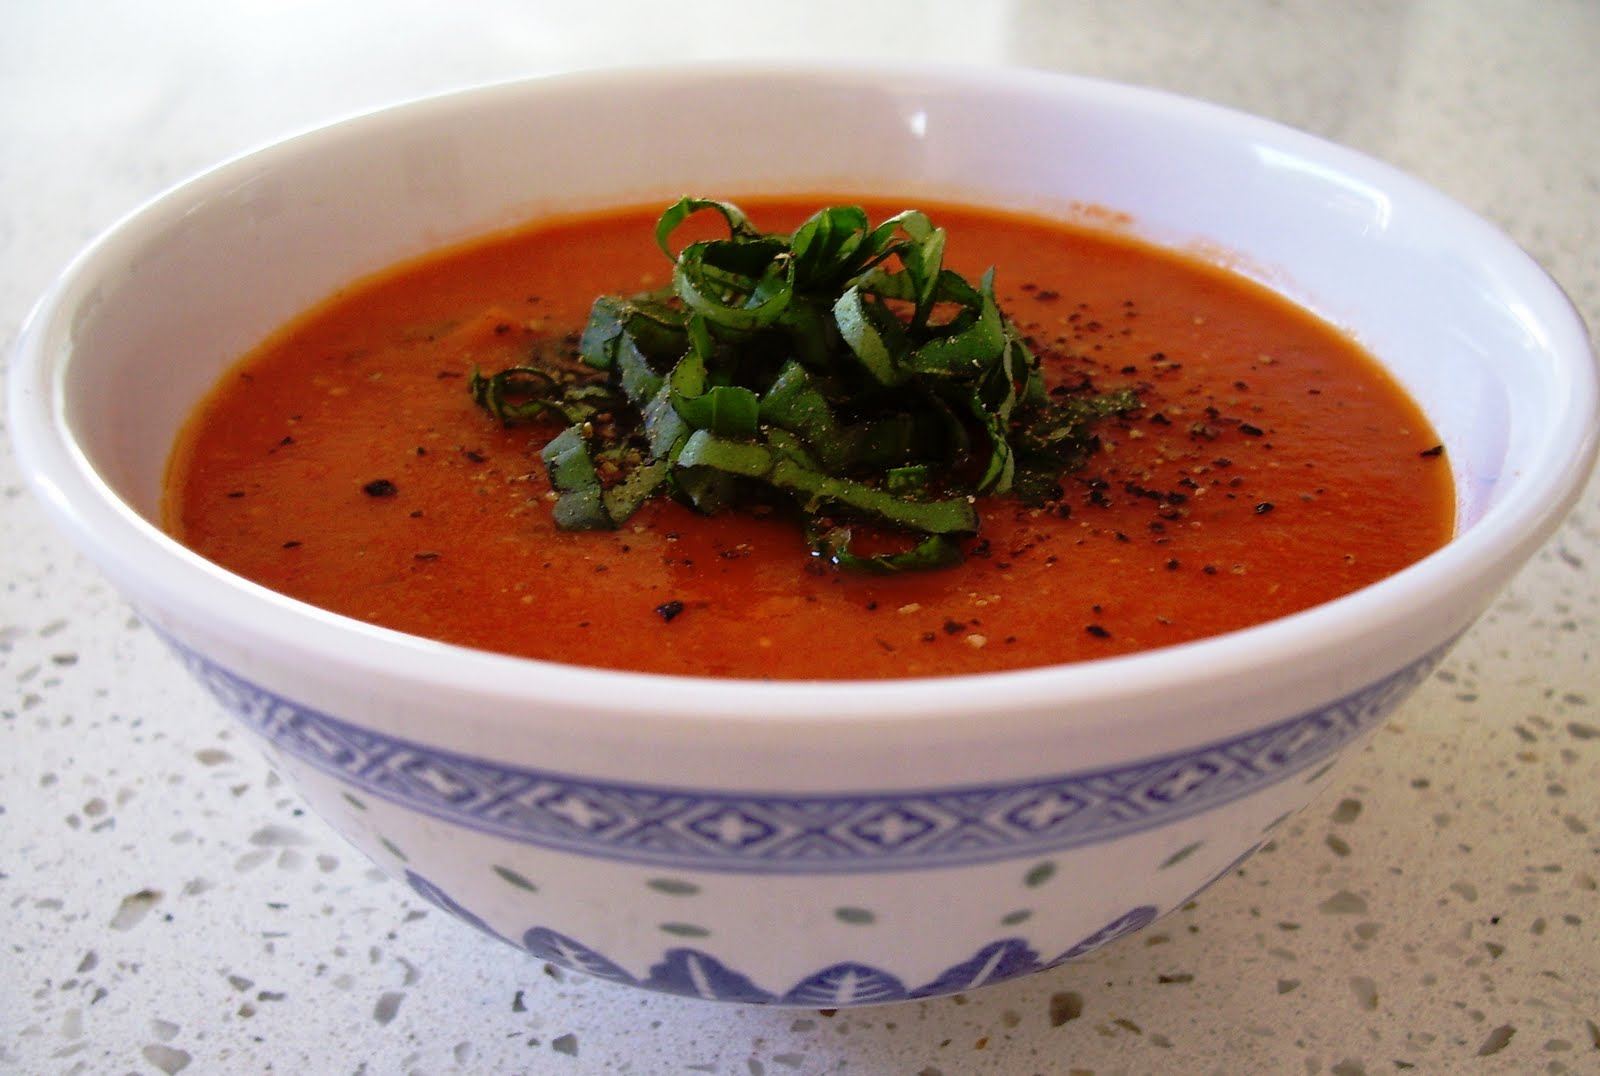 Veganise This!: Smoky tomato and lentil soup